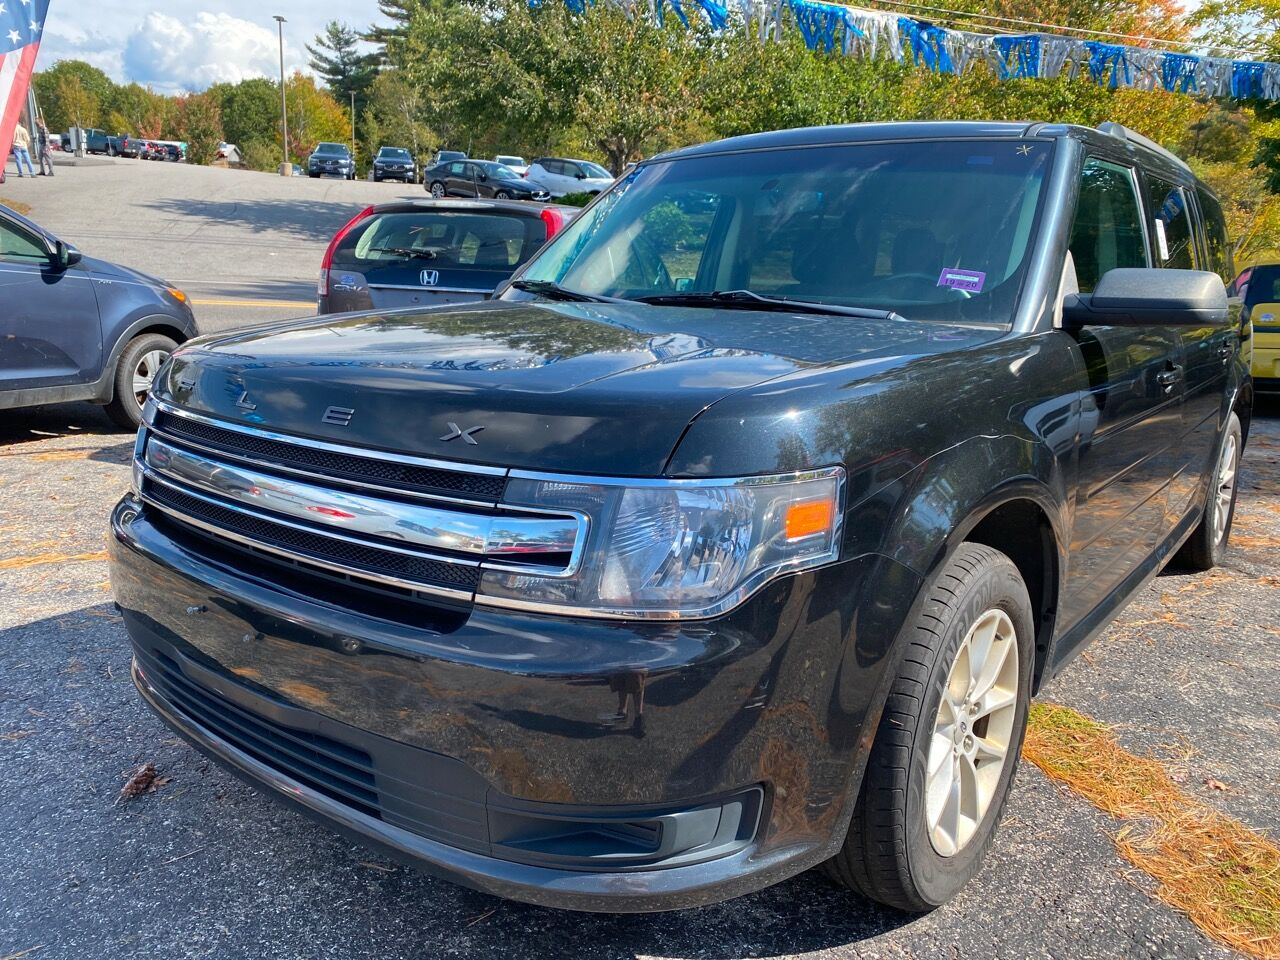 The Best Ford Flex 2020 Price In India